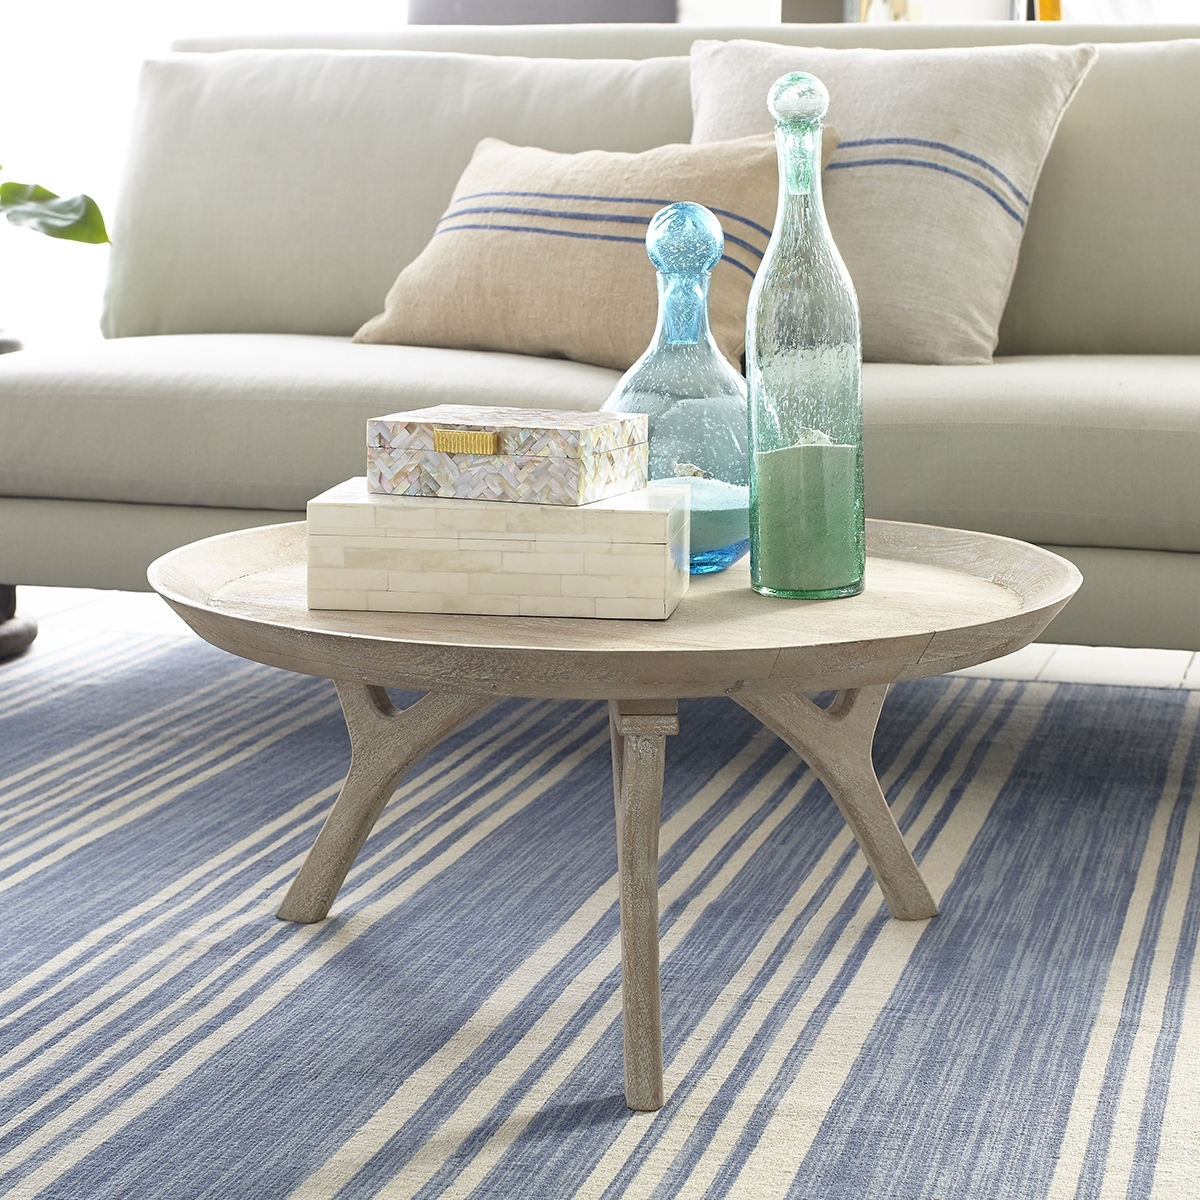 Wisteria In Popular Broll Coffee Tables (View 17 of 20)